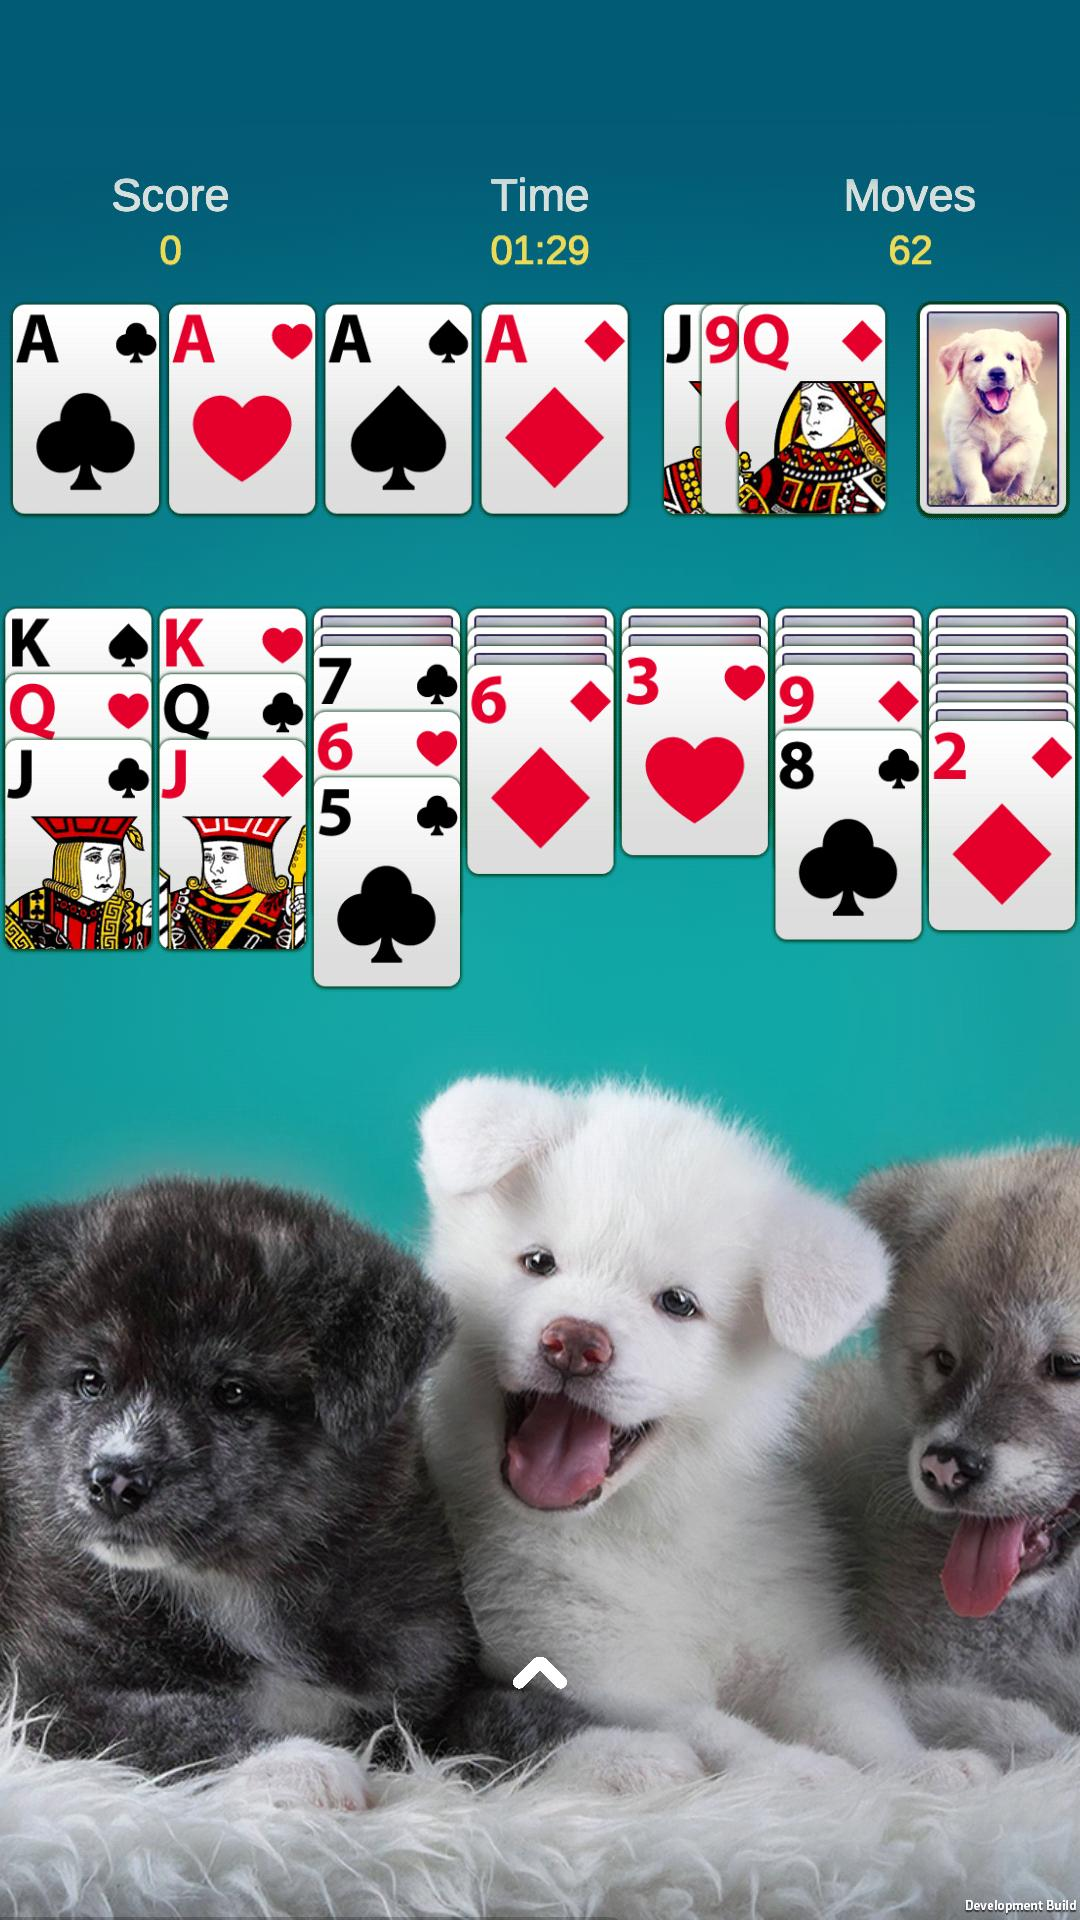 Solitaire - Free Classic Solitaire Card Games 1.8.5 Screenshot 2